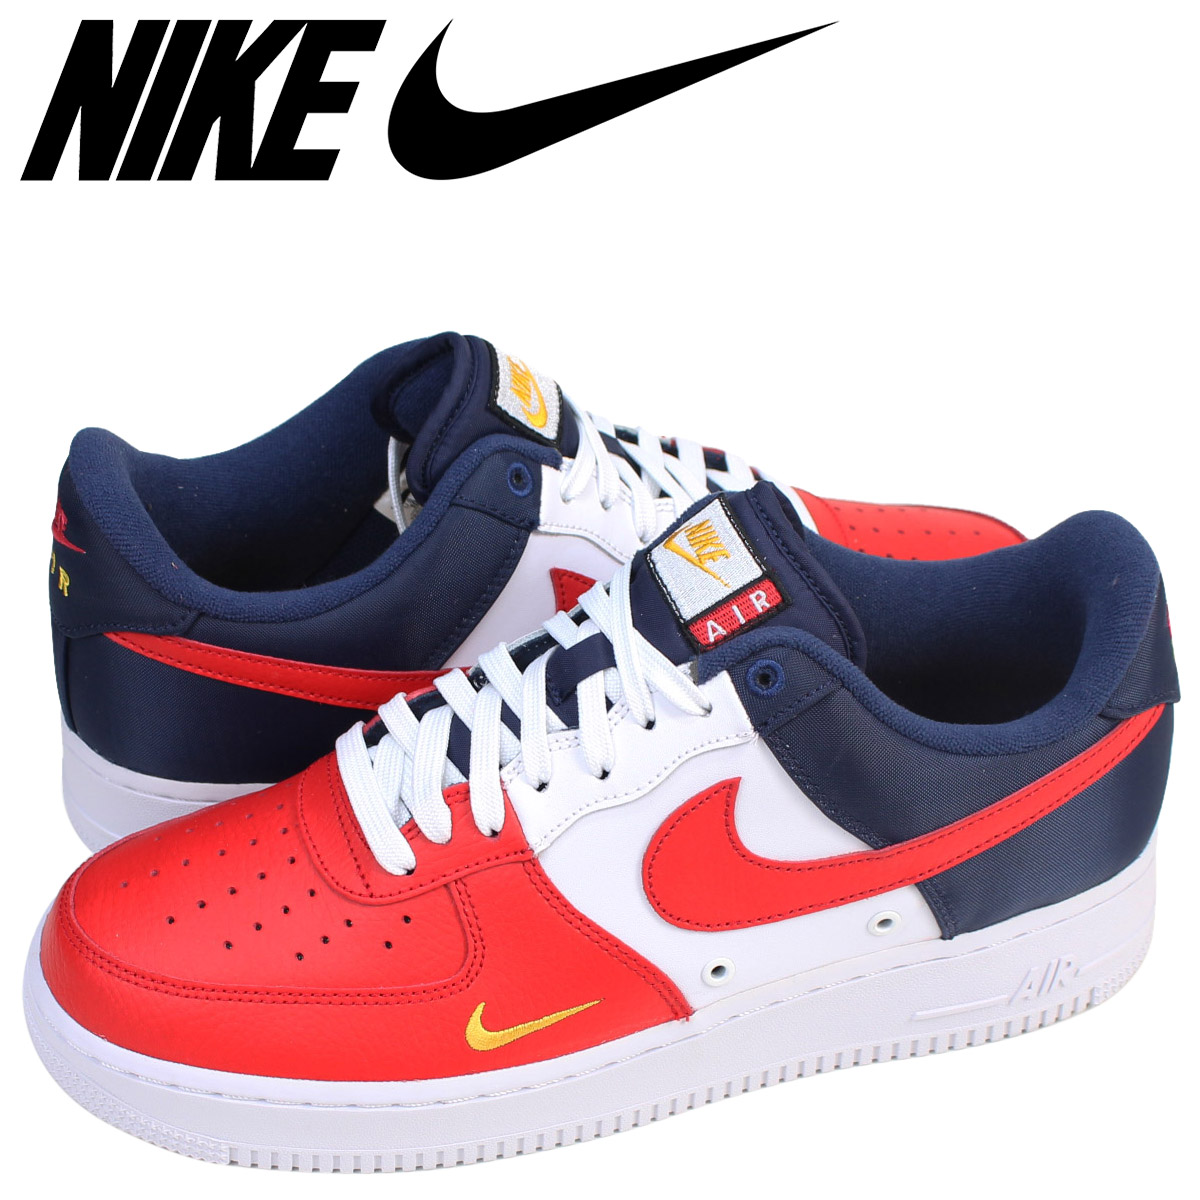 Nike 511 Air Force Sneakers Low Men's 07 Lv8 1 601 Tricolor 823 QCtdBsohrx